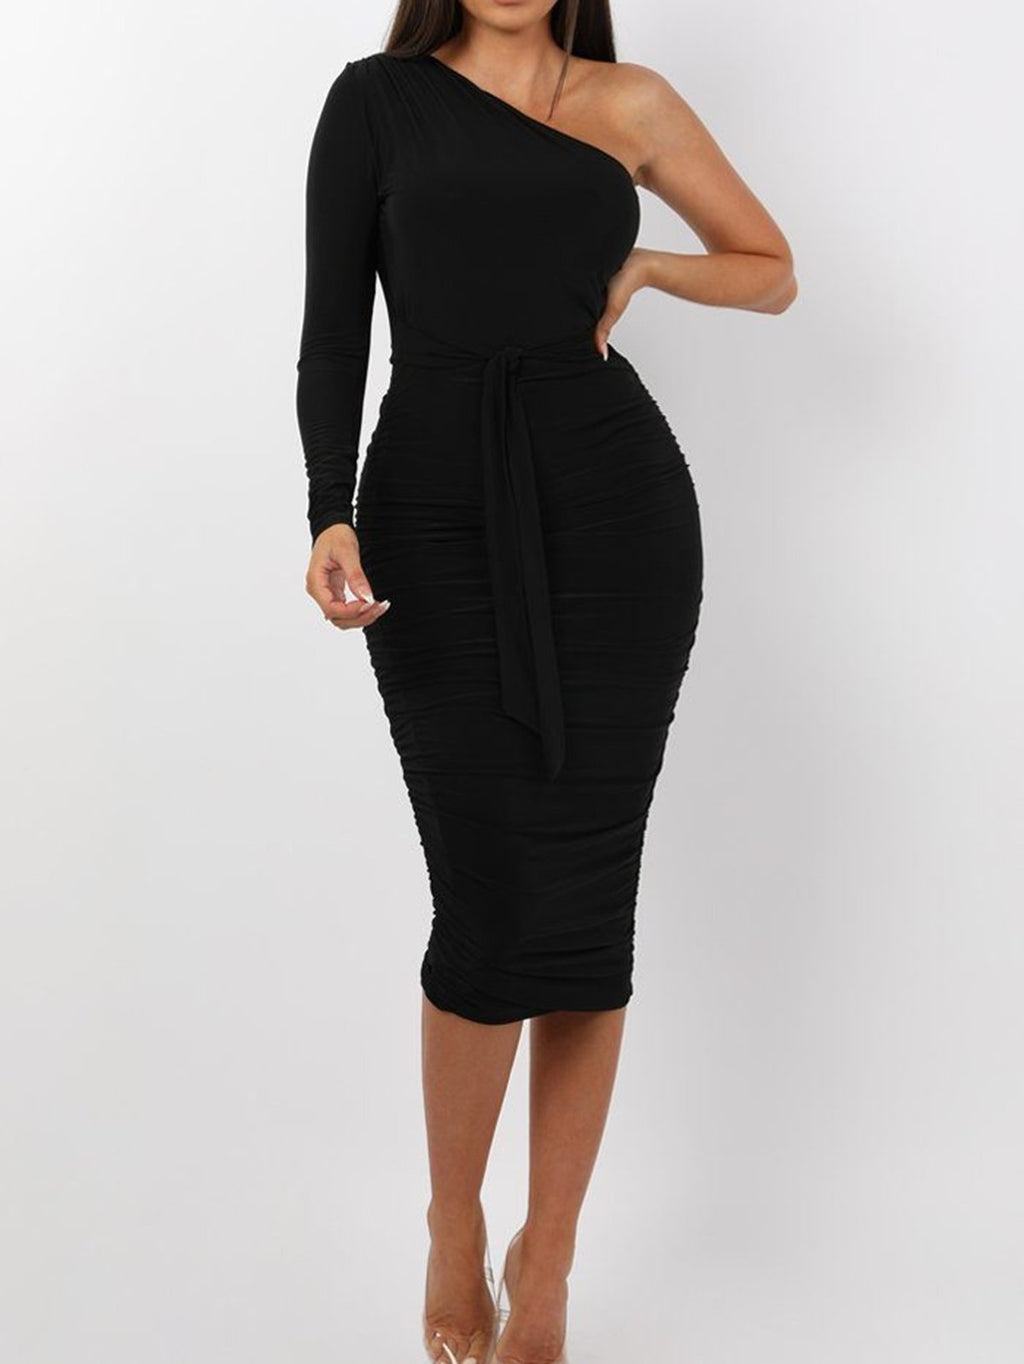 Black Plus Size Basic One Shoulder Ruched Slinky Sexy Bodycon Midi Dress Rikkishop